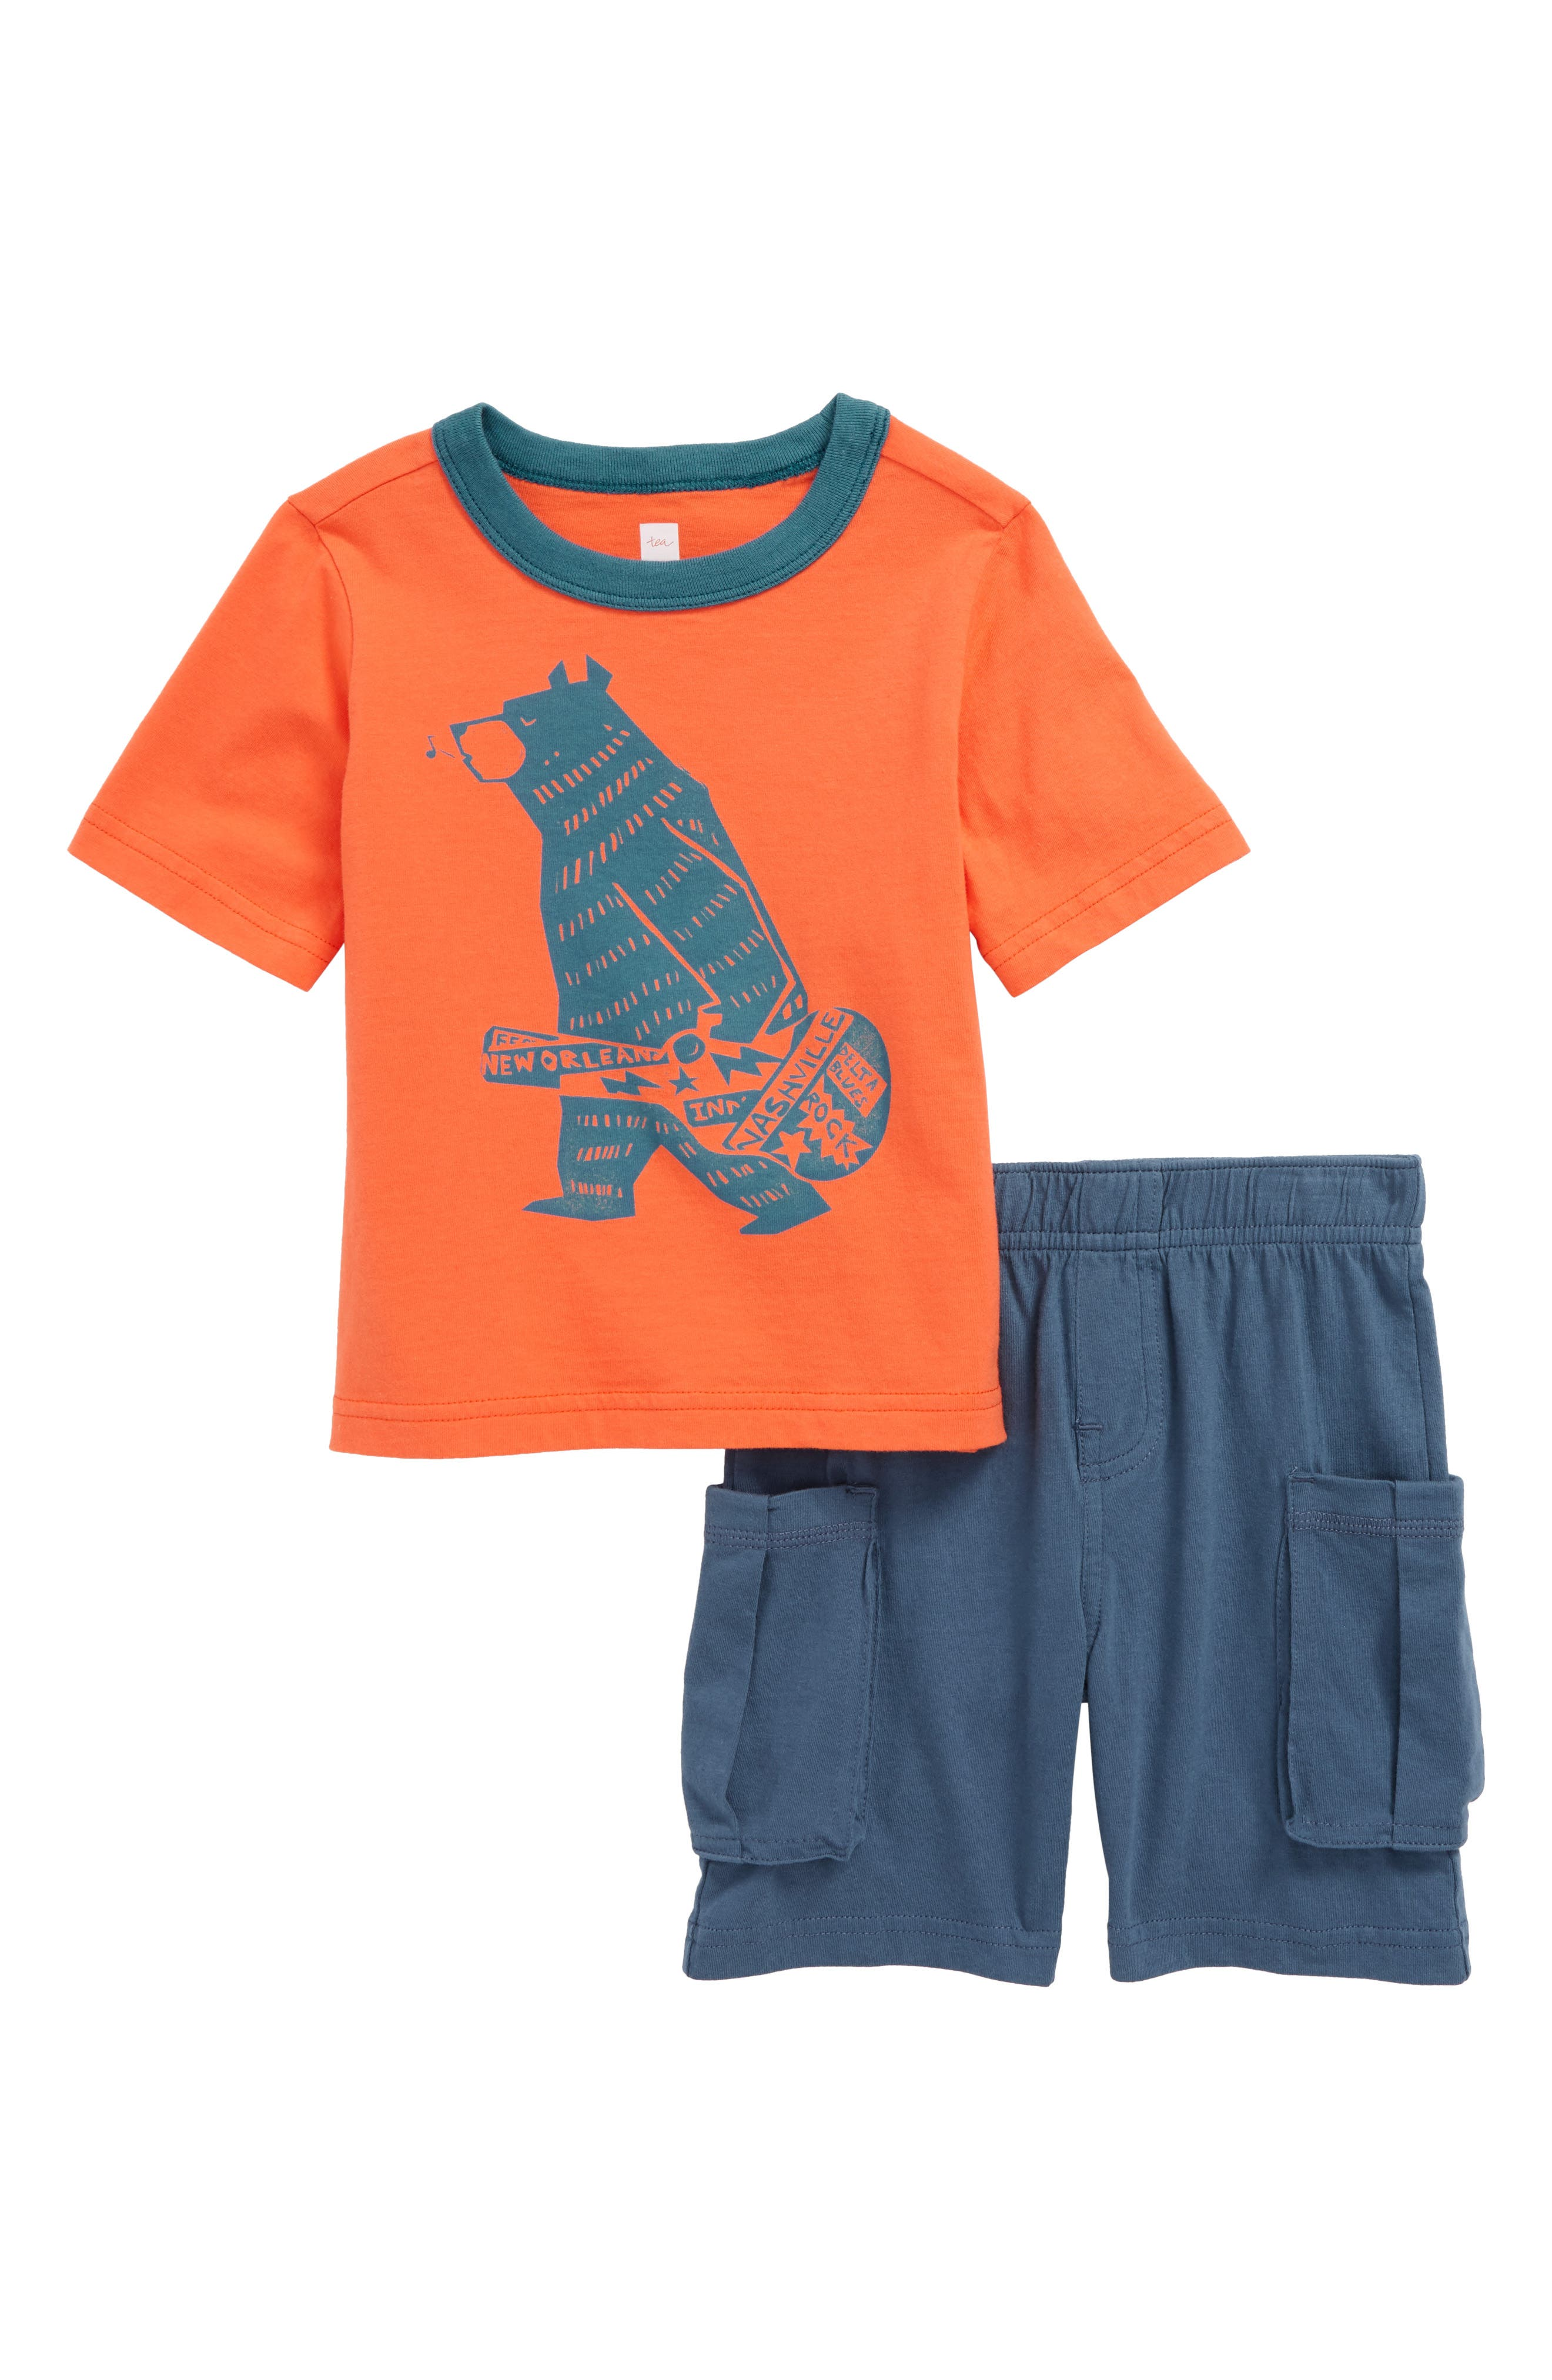 All Baby Boy Clothes Bodysuits Footies Tops & More